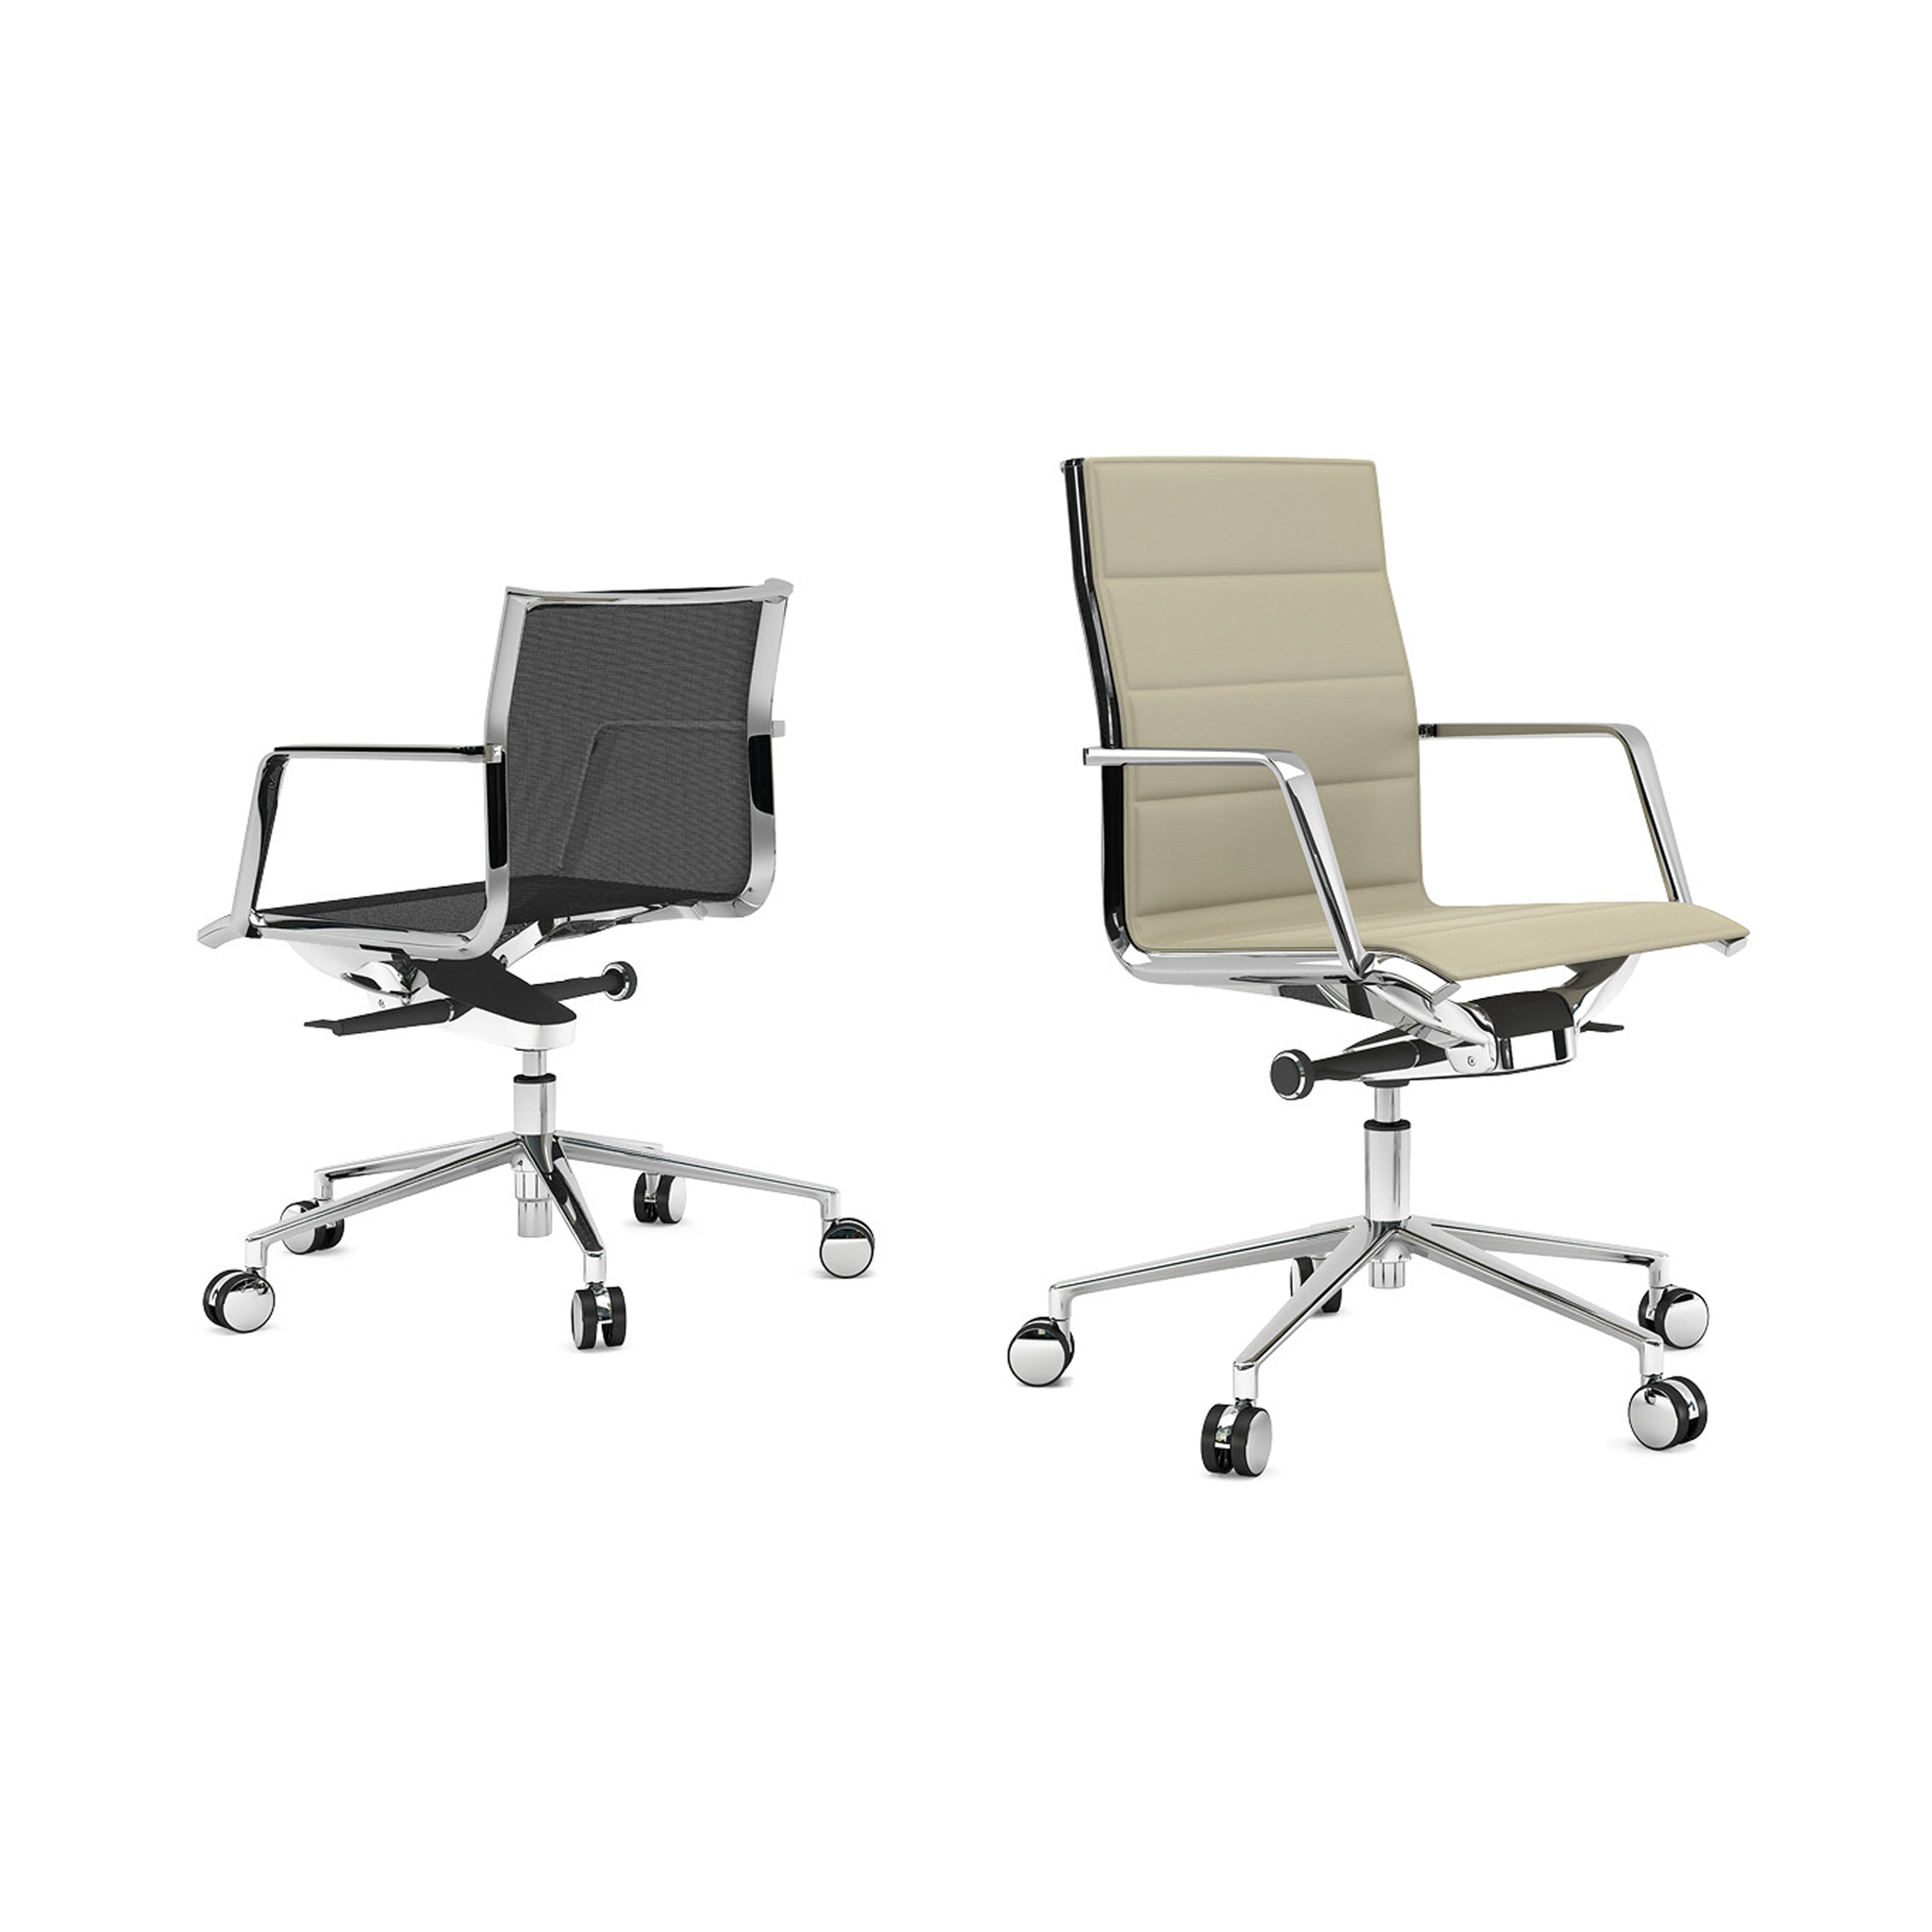 04S_Estel_Comfort&Relax_Office-chair&contract-conference_Aluminia